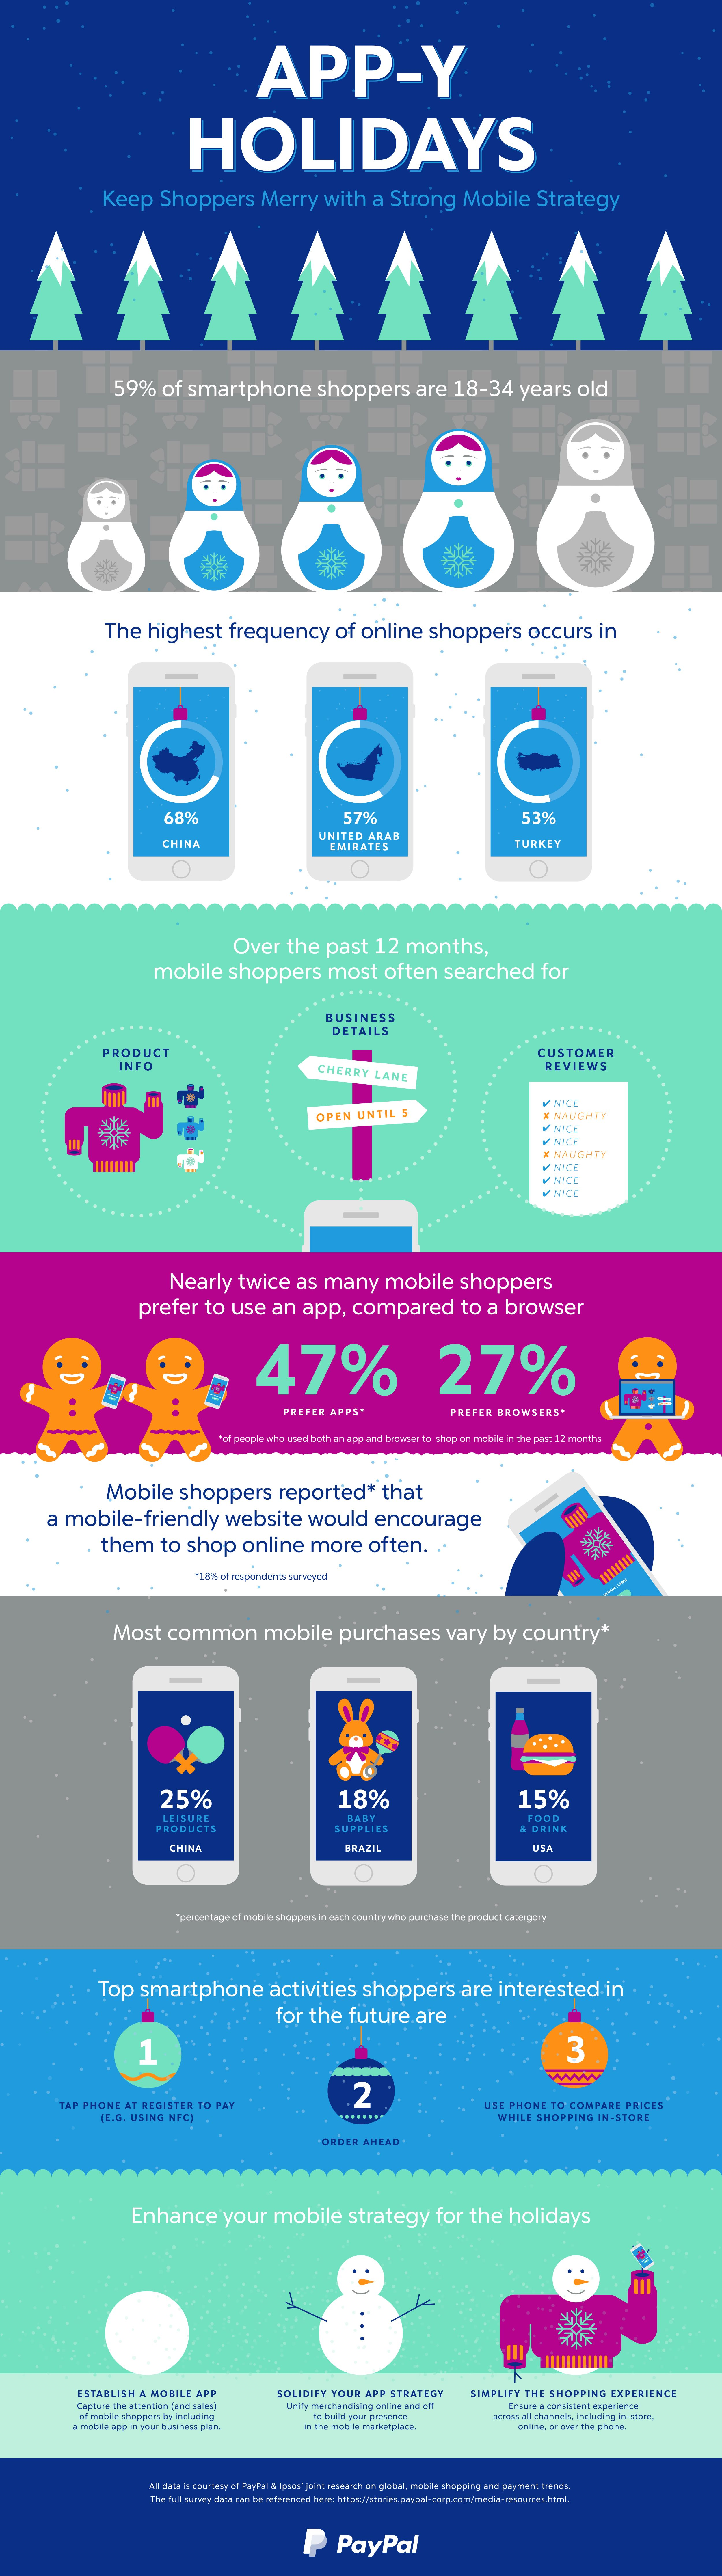 App-Y Holidays #Infographic